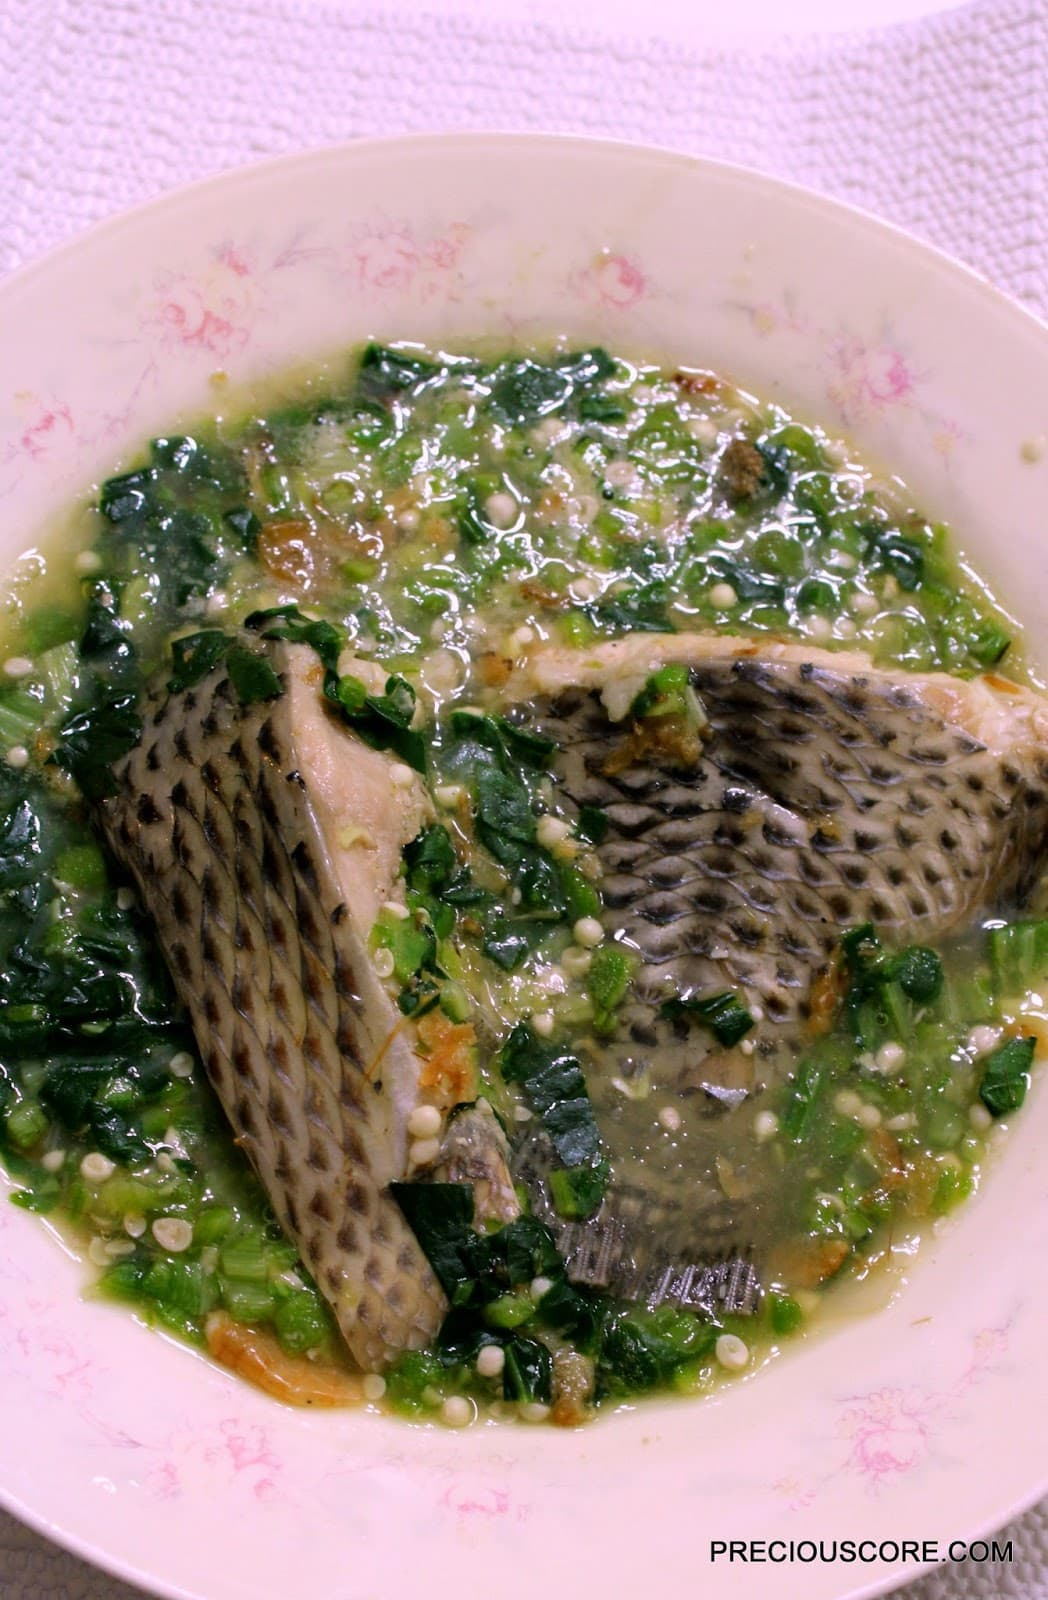 African Cuisine Recipes Plain Okra Soup Recipe Cameroon Precious Core